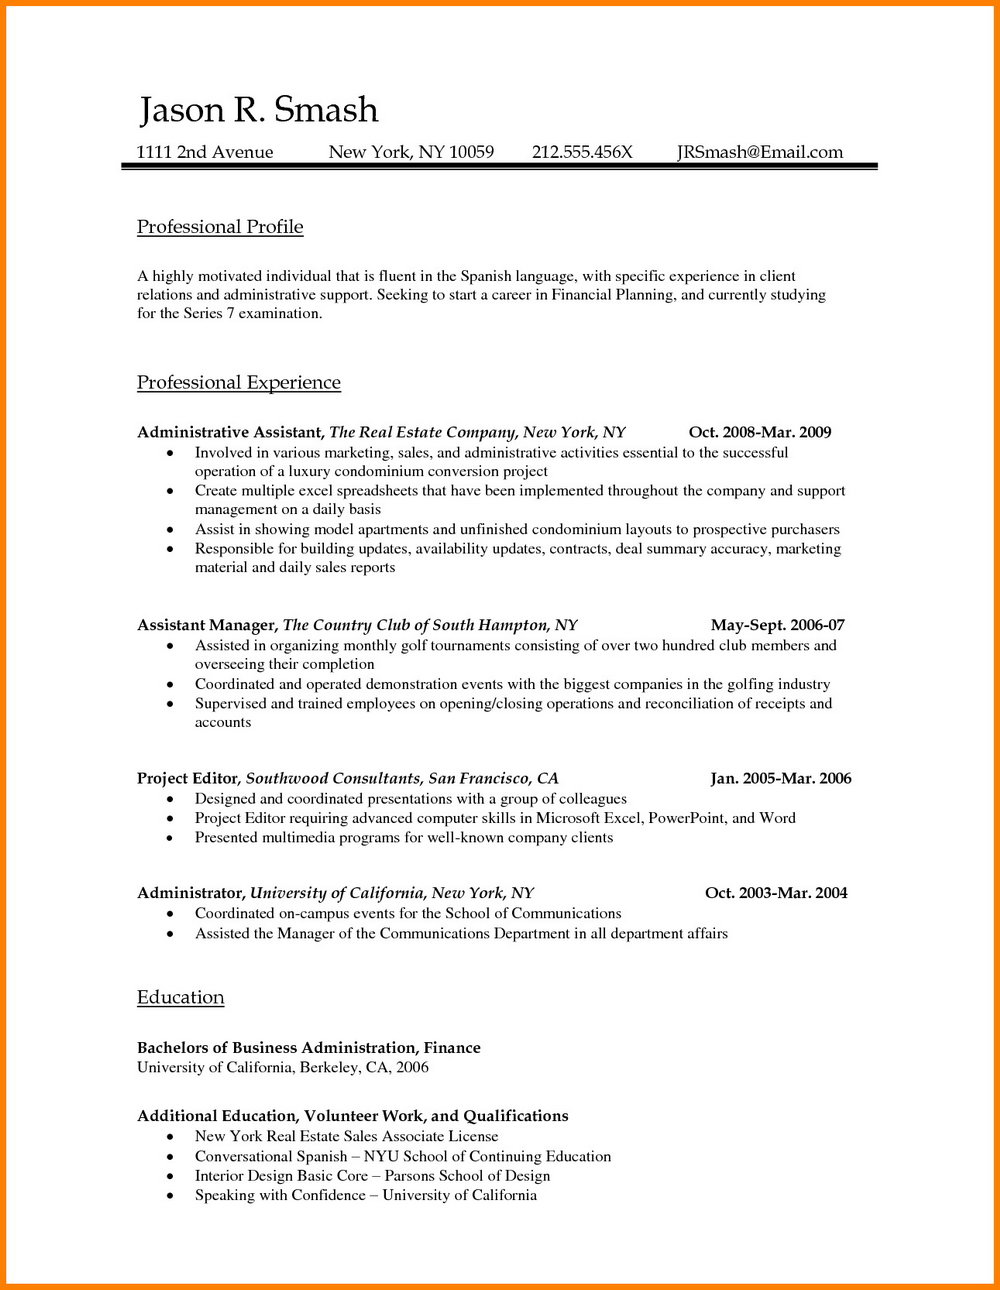 Resume Format For Bank Job In Word File Download